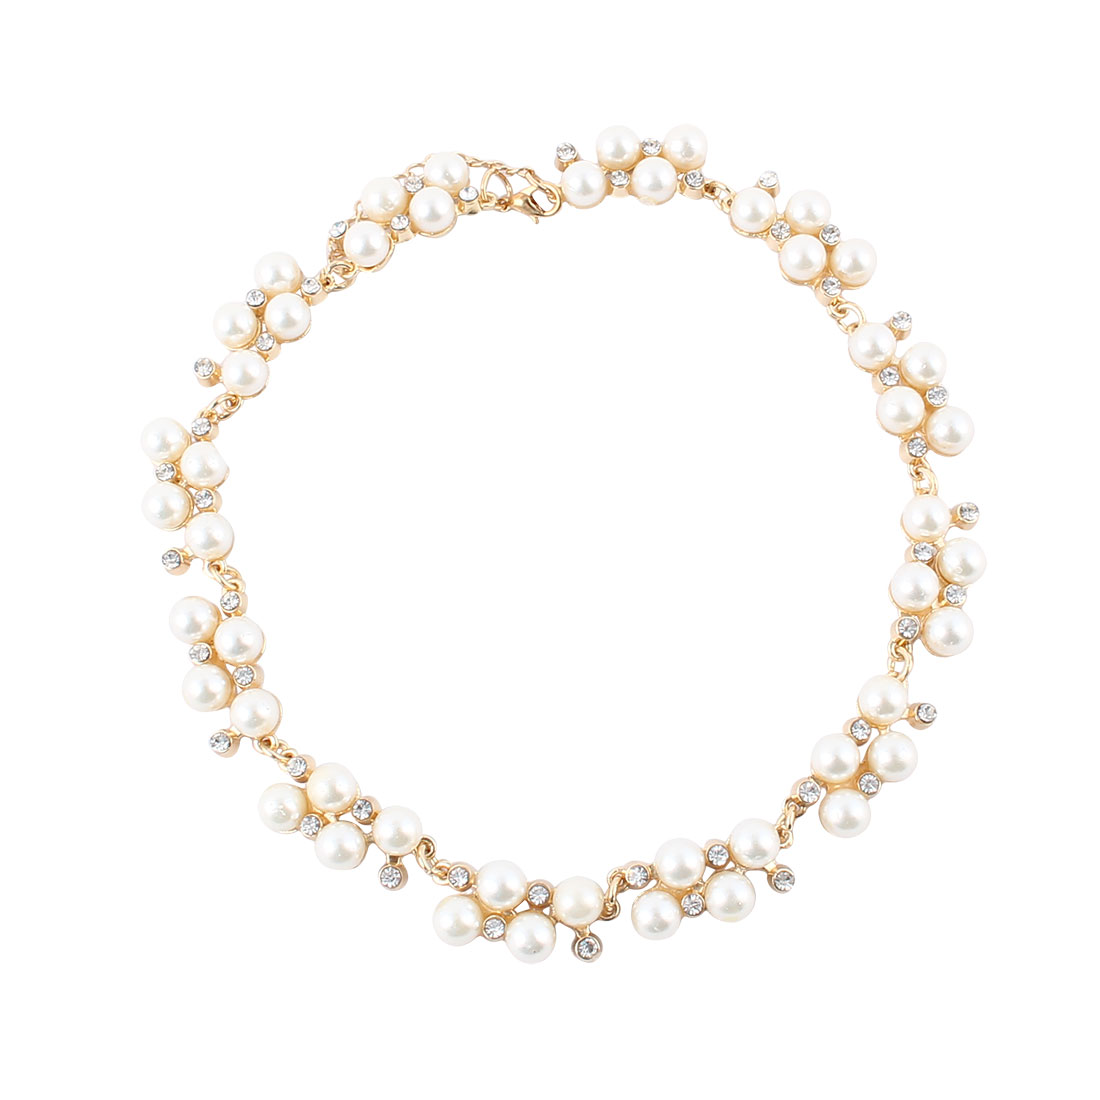 Women Metal Imitation Pearl Rhinestone Inlaid Bib Statement Choker Necklace